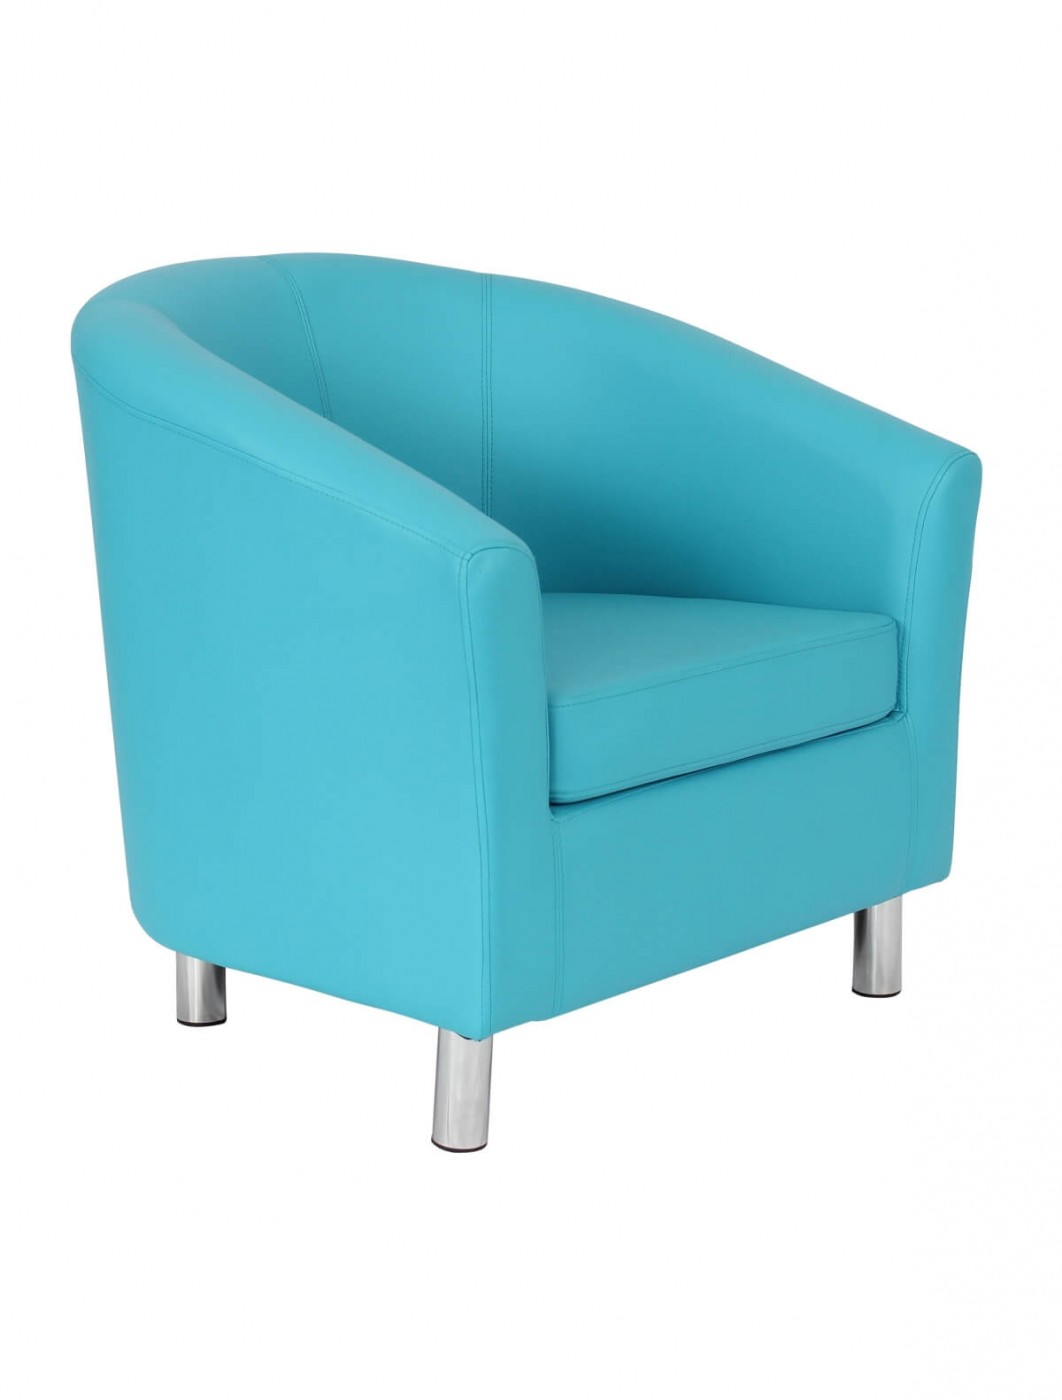 Armchair - PU Leather Tub Chair OF2201ML Reception Chairs ...